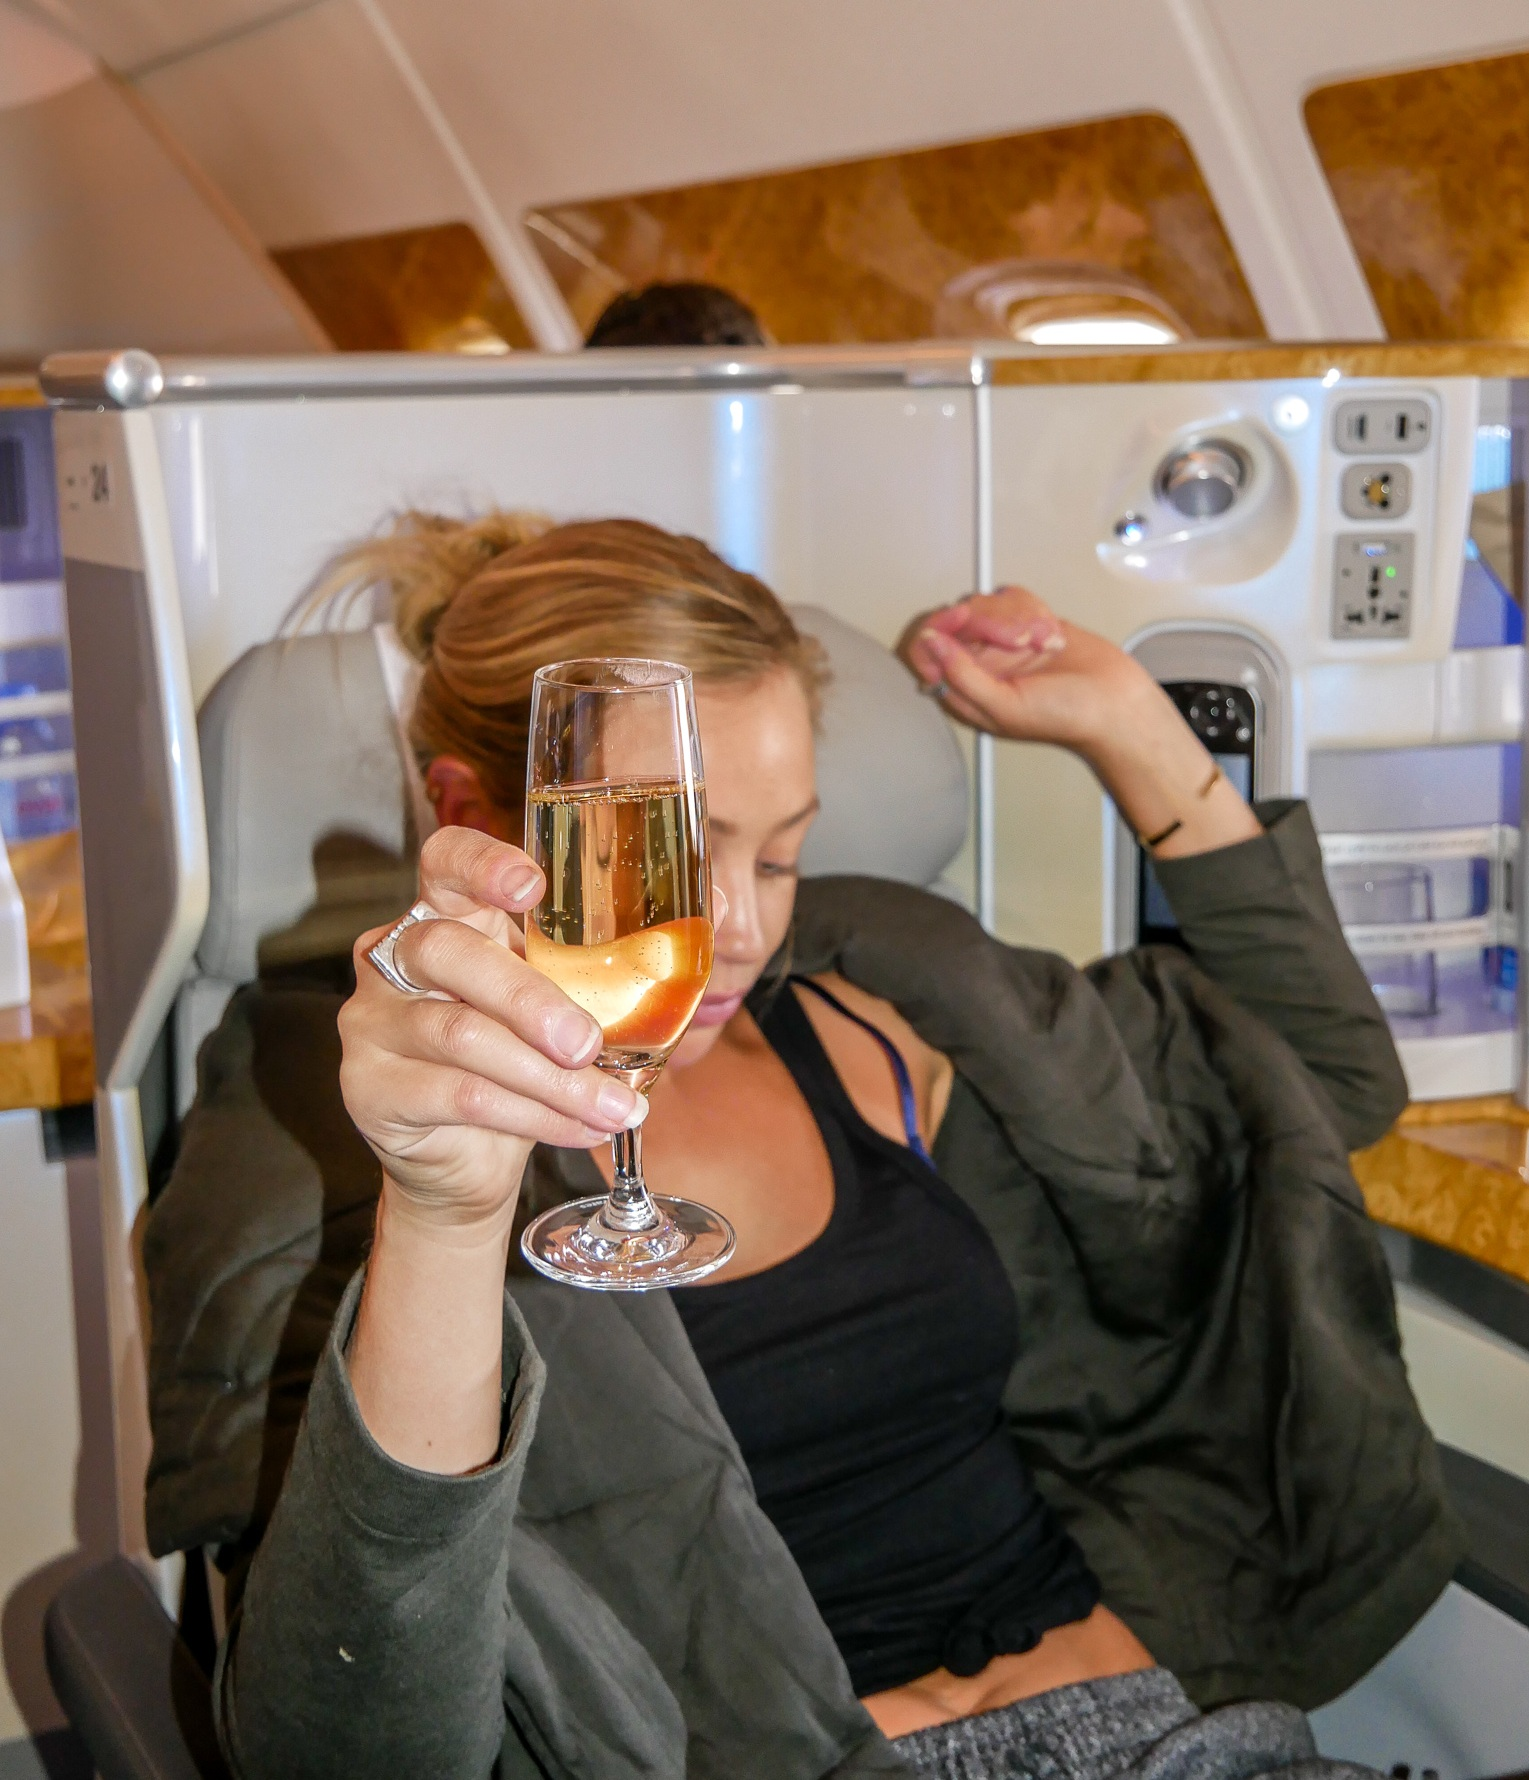 My first time on the Emirates A380 Airbus in 2017